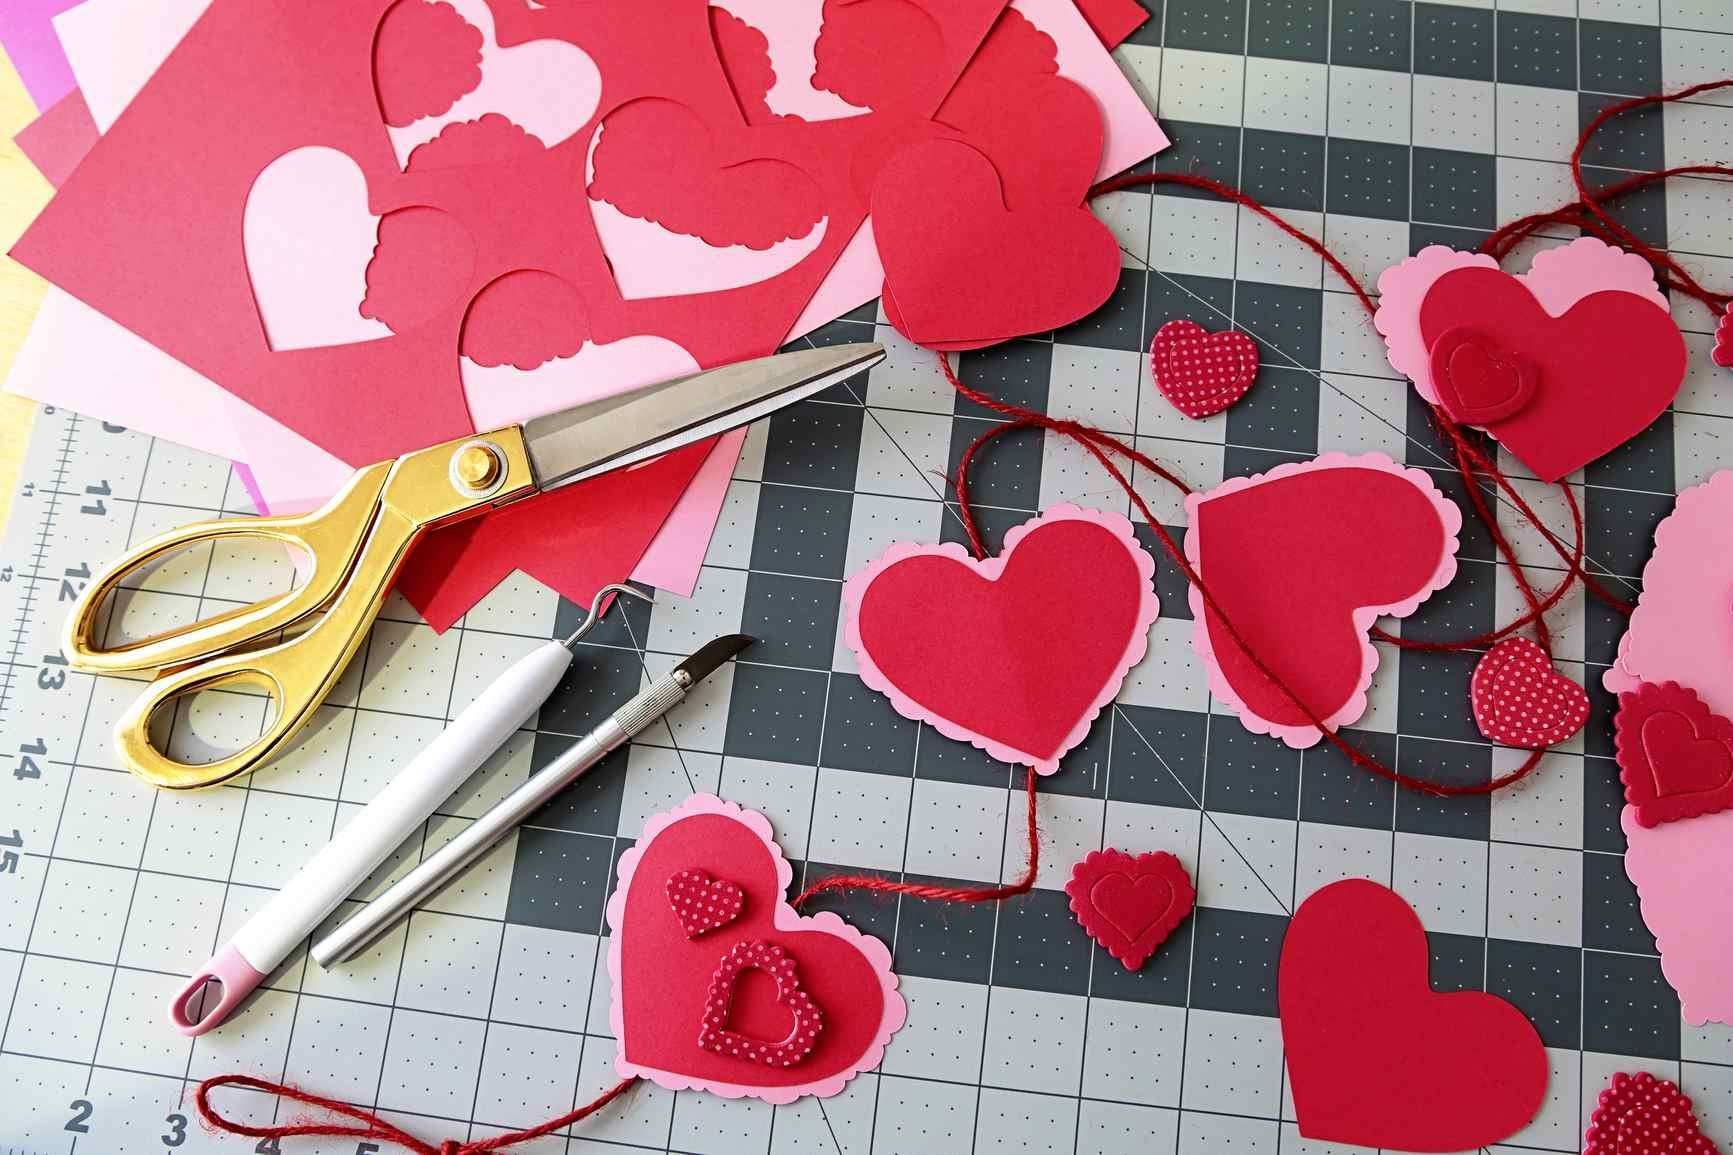 Valentines Day Books For Kids 6 Free Printable Heart Templates - Free Printable Valentine's Day Stencils